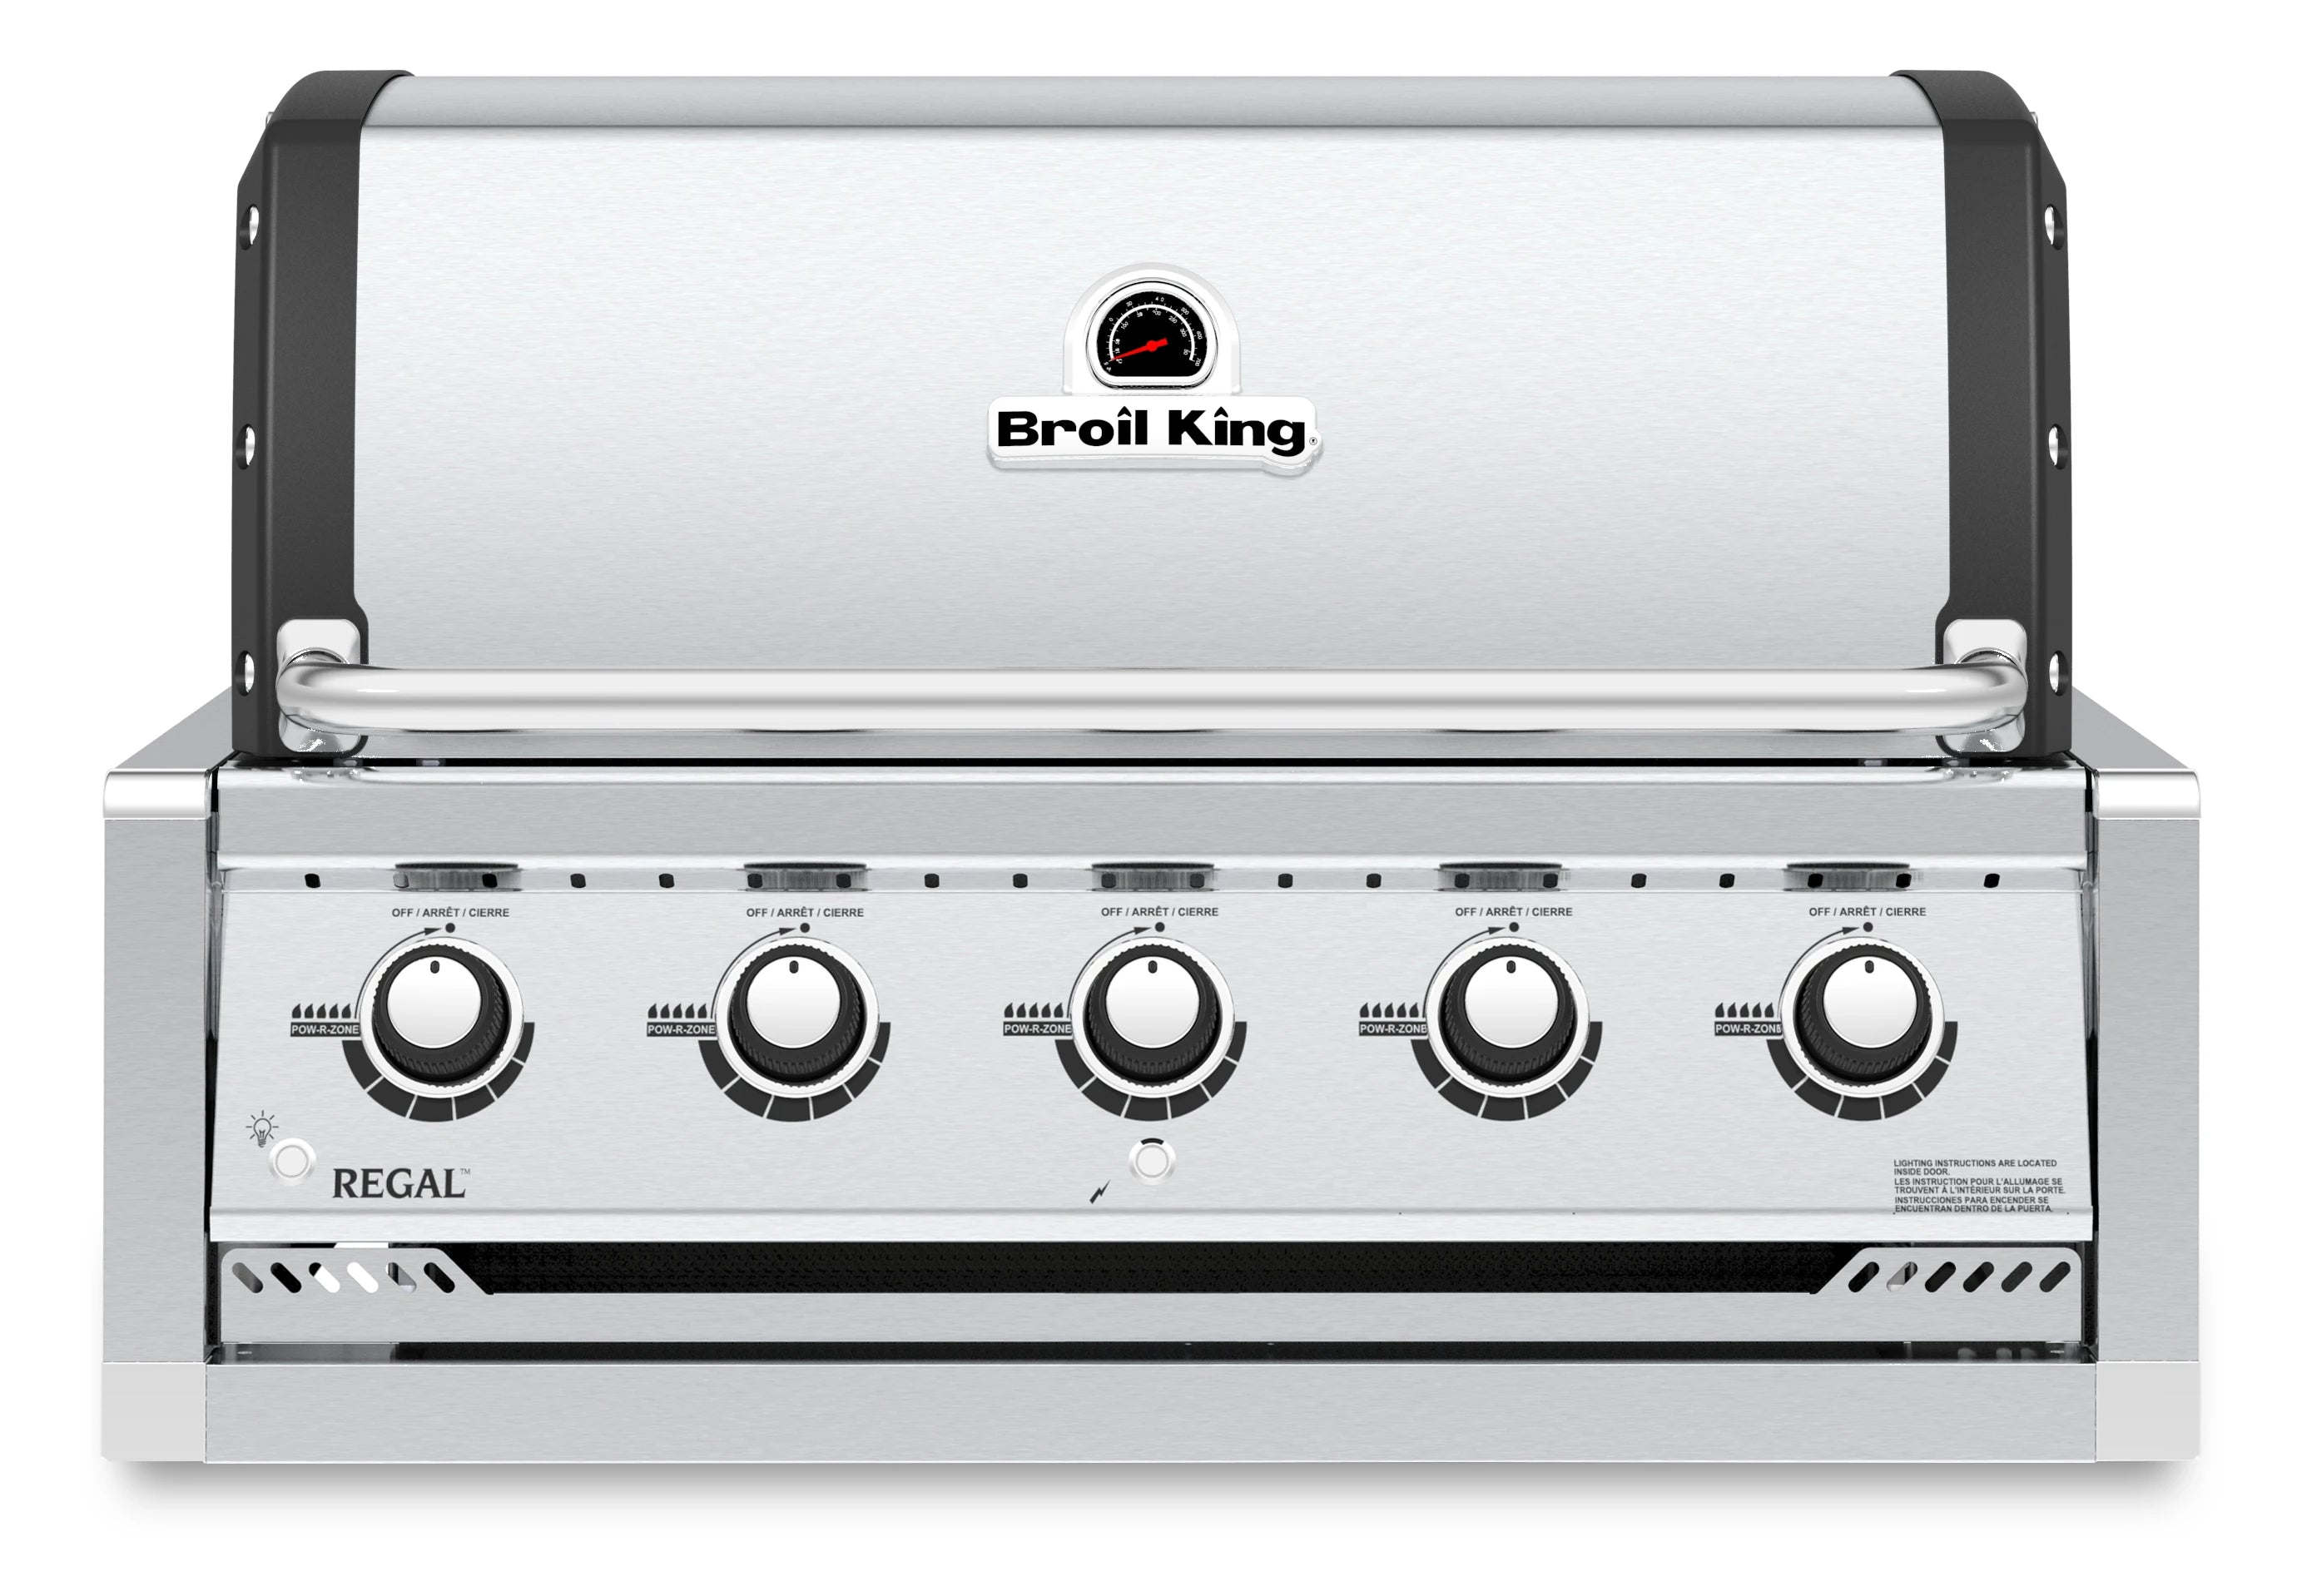 Broil King Regal S520